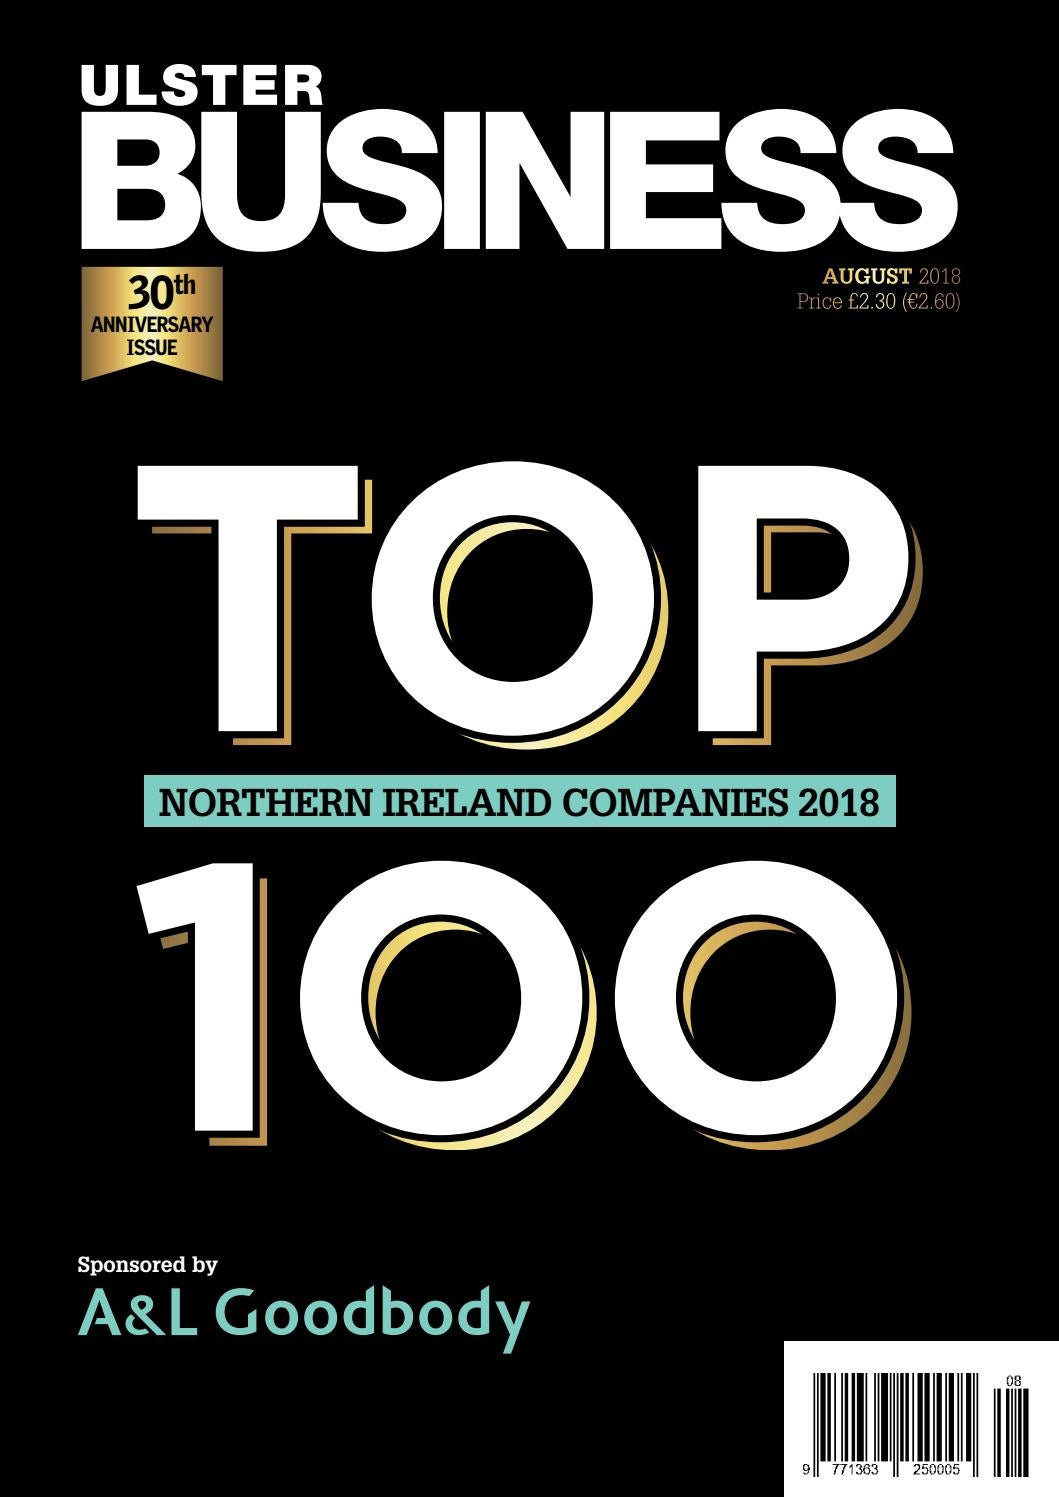 Ulster Business - August 2018 by Ulster Business - issuu